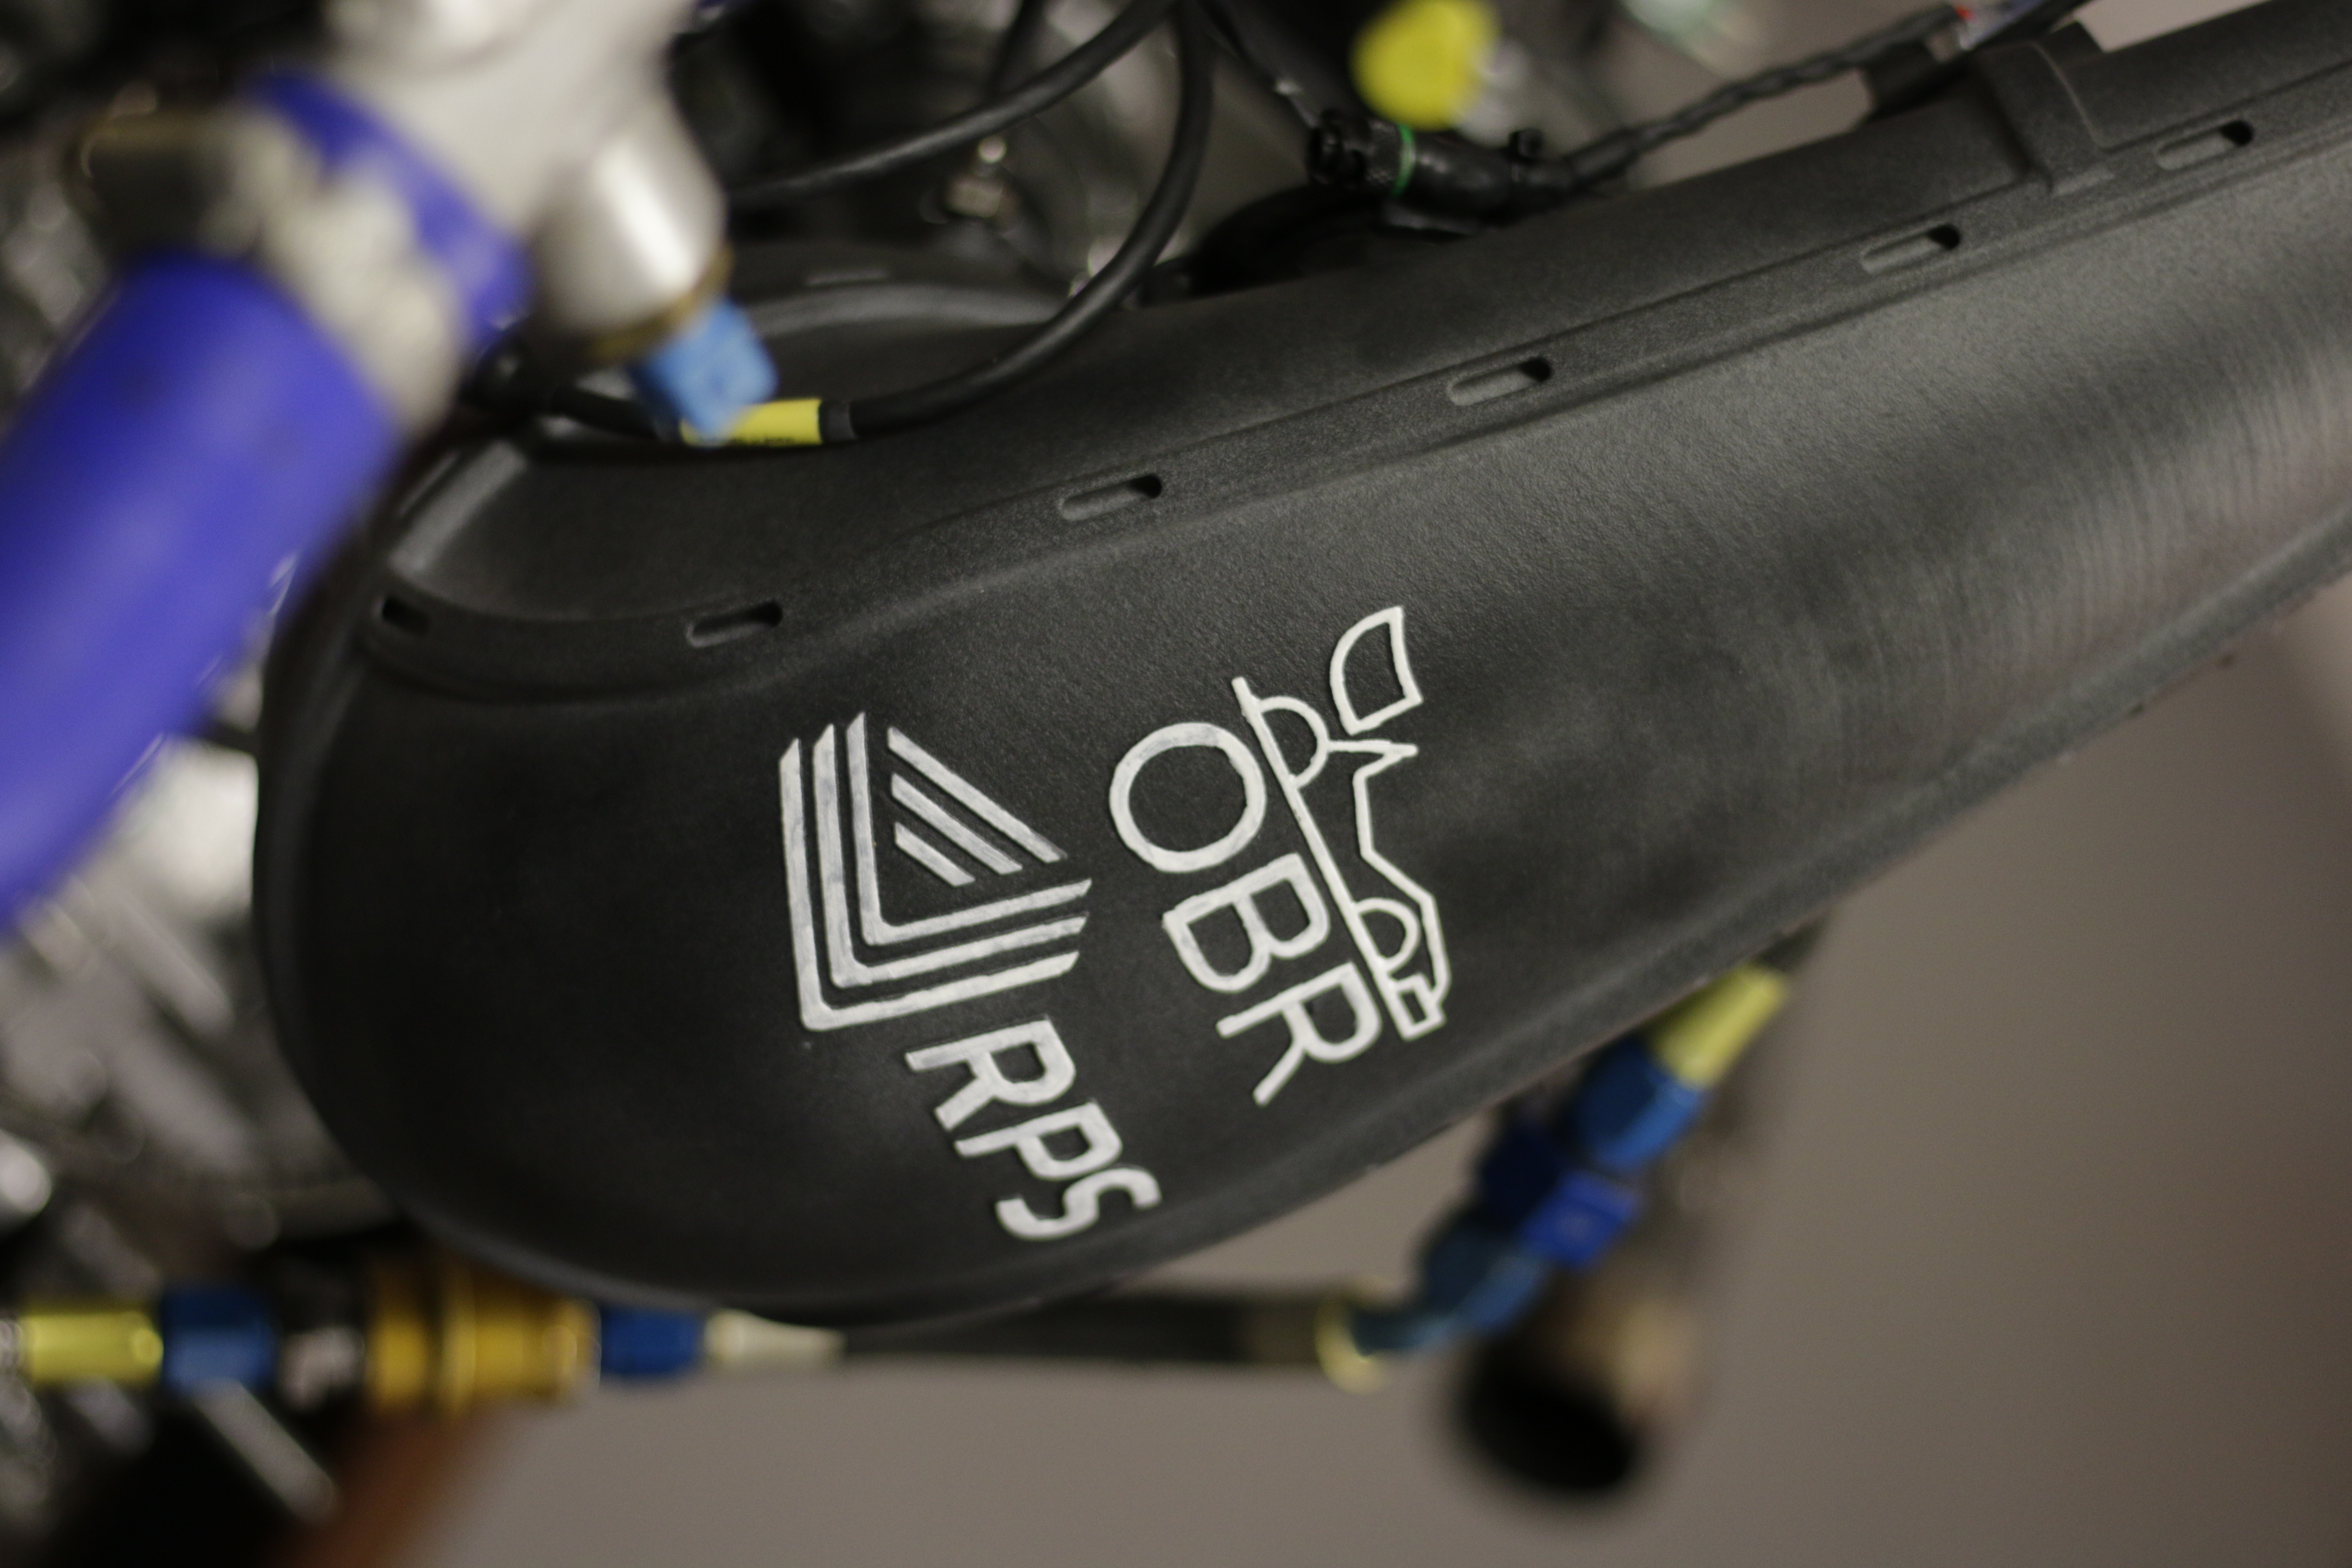 The OBR and RPS logo, side by side. Photo via RPS.